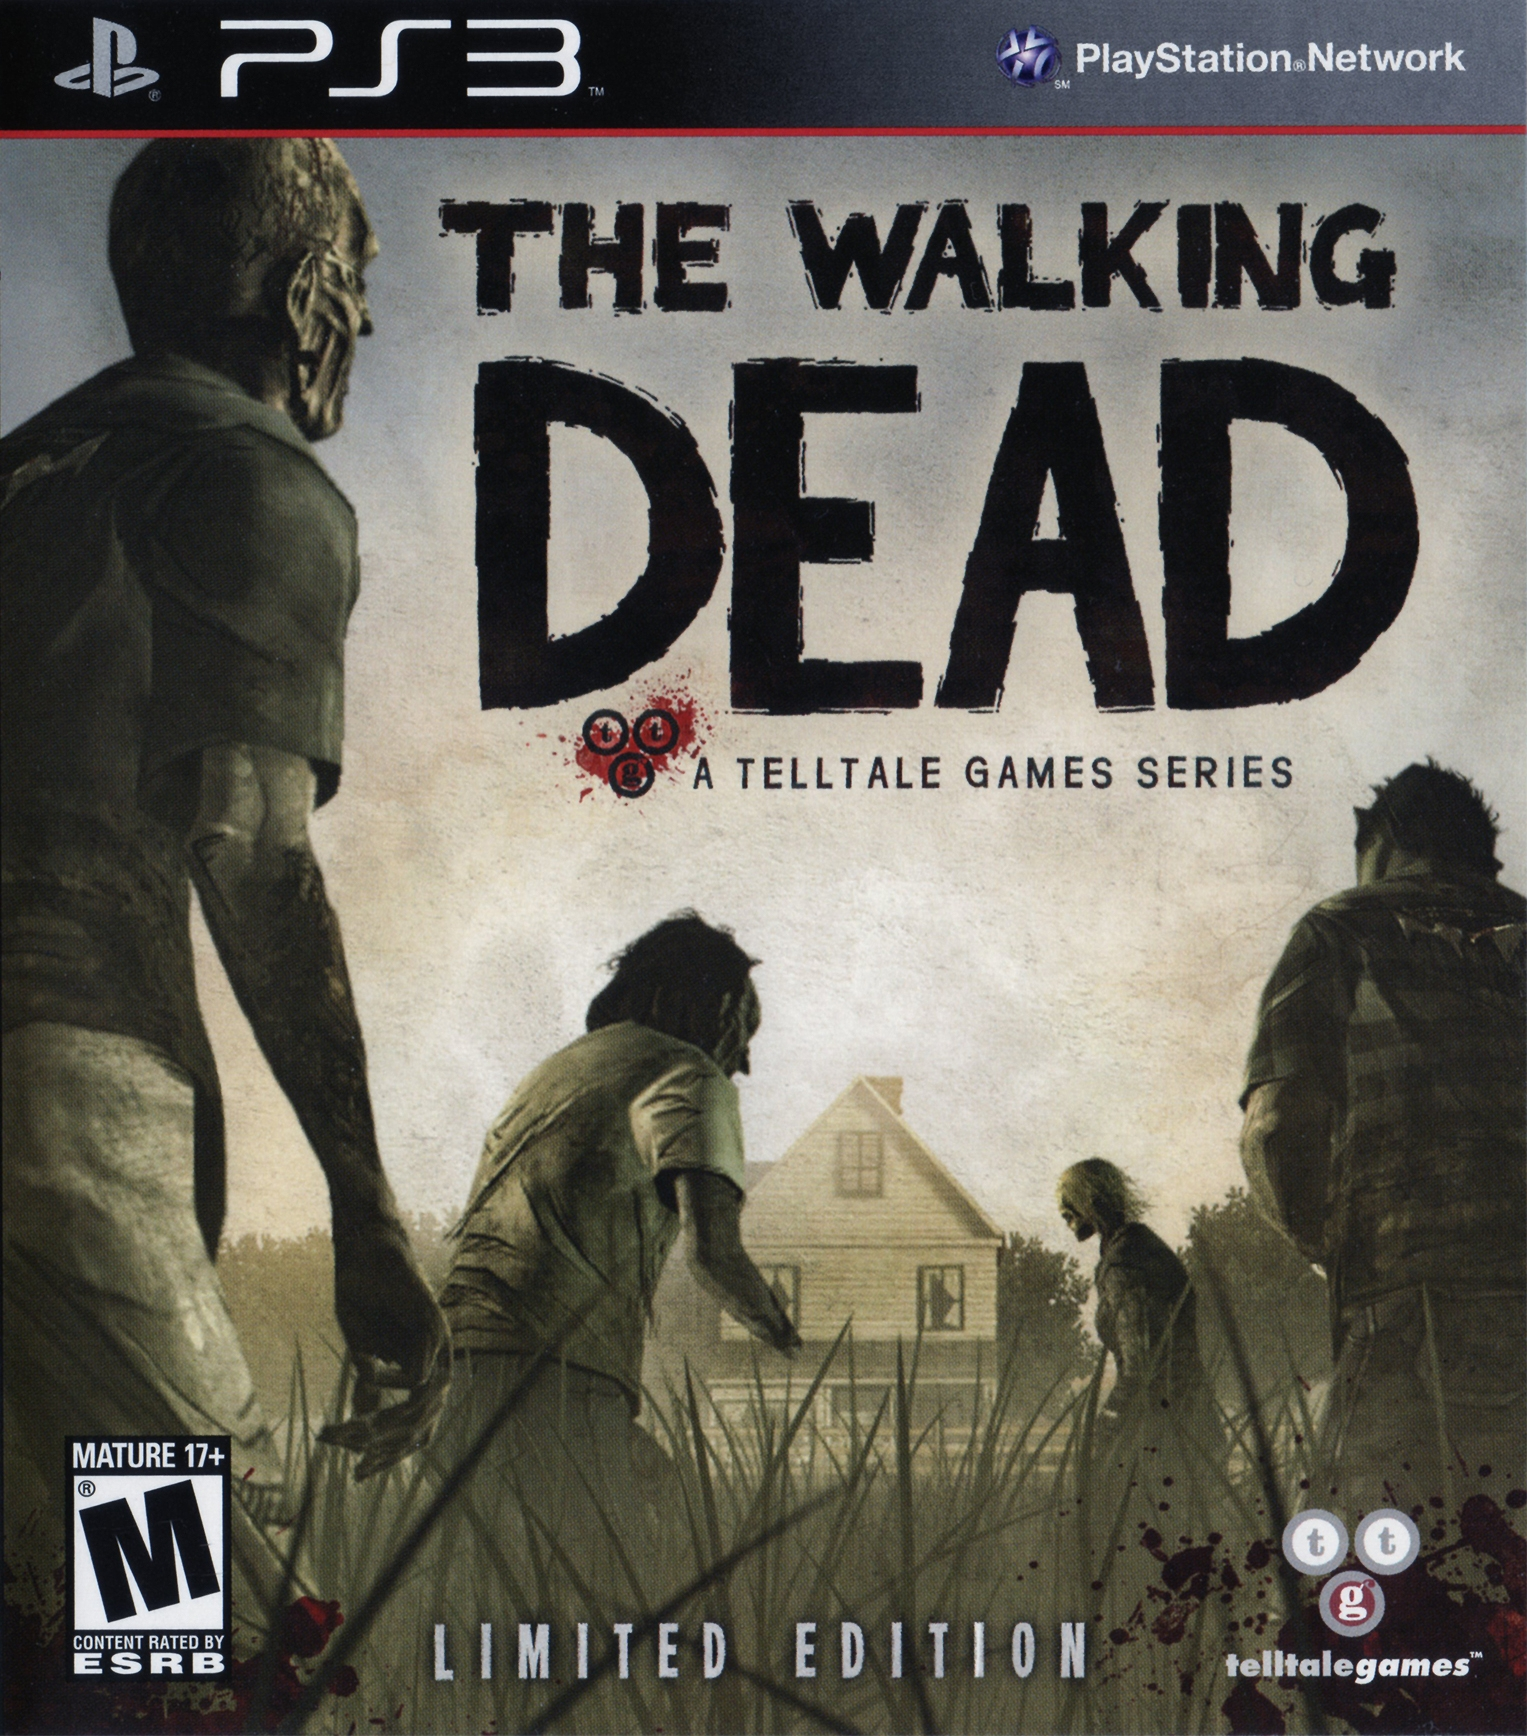 the-walking-dead-ps3-cover.jpg